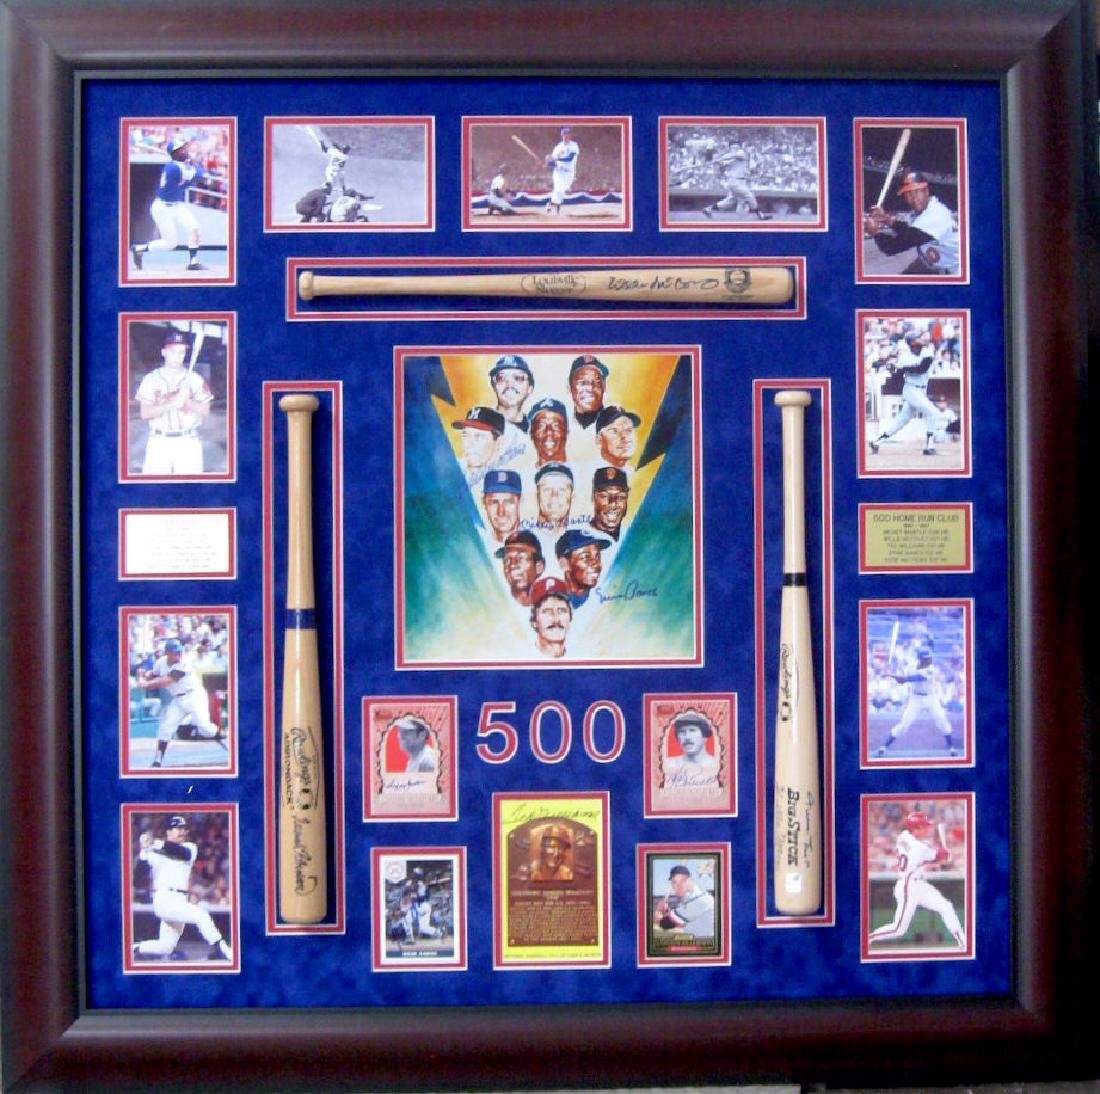 Authentic 500 Home Run Club Collage With Mini Bats